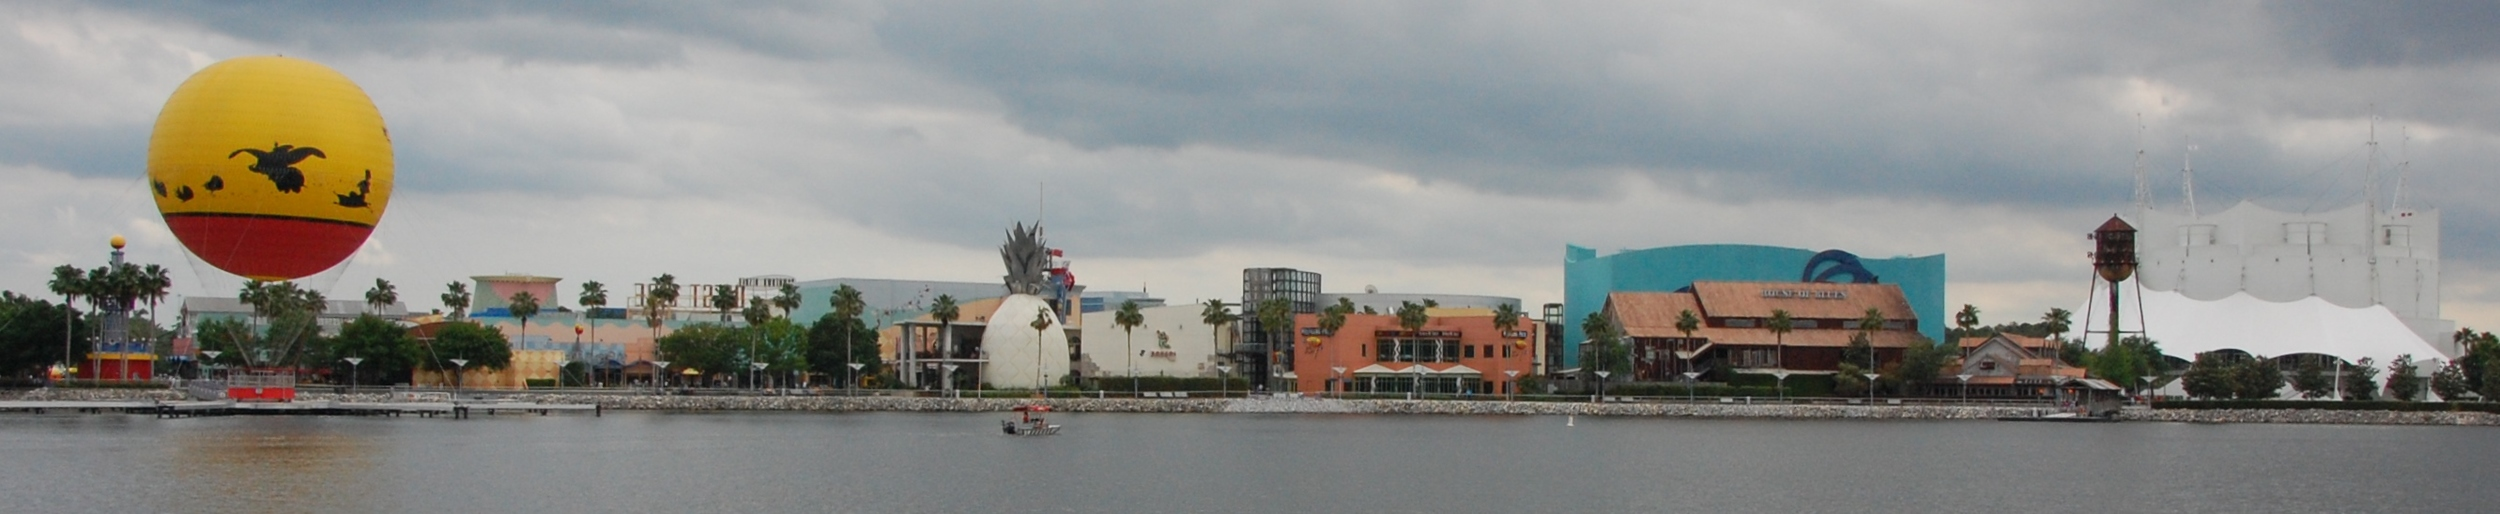 Downtown Disney is a short walk or boat ride away from Saratoga Springs